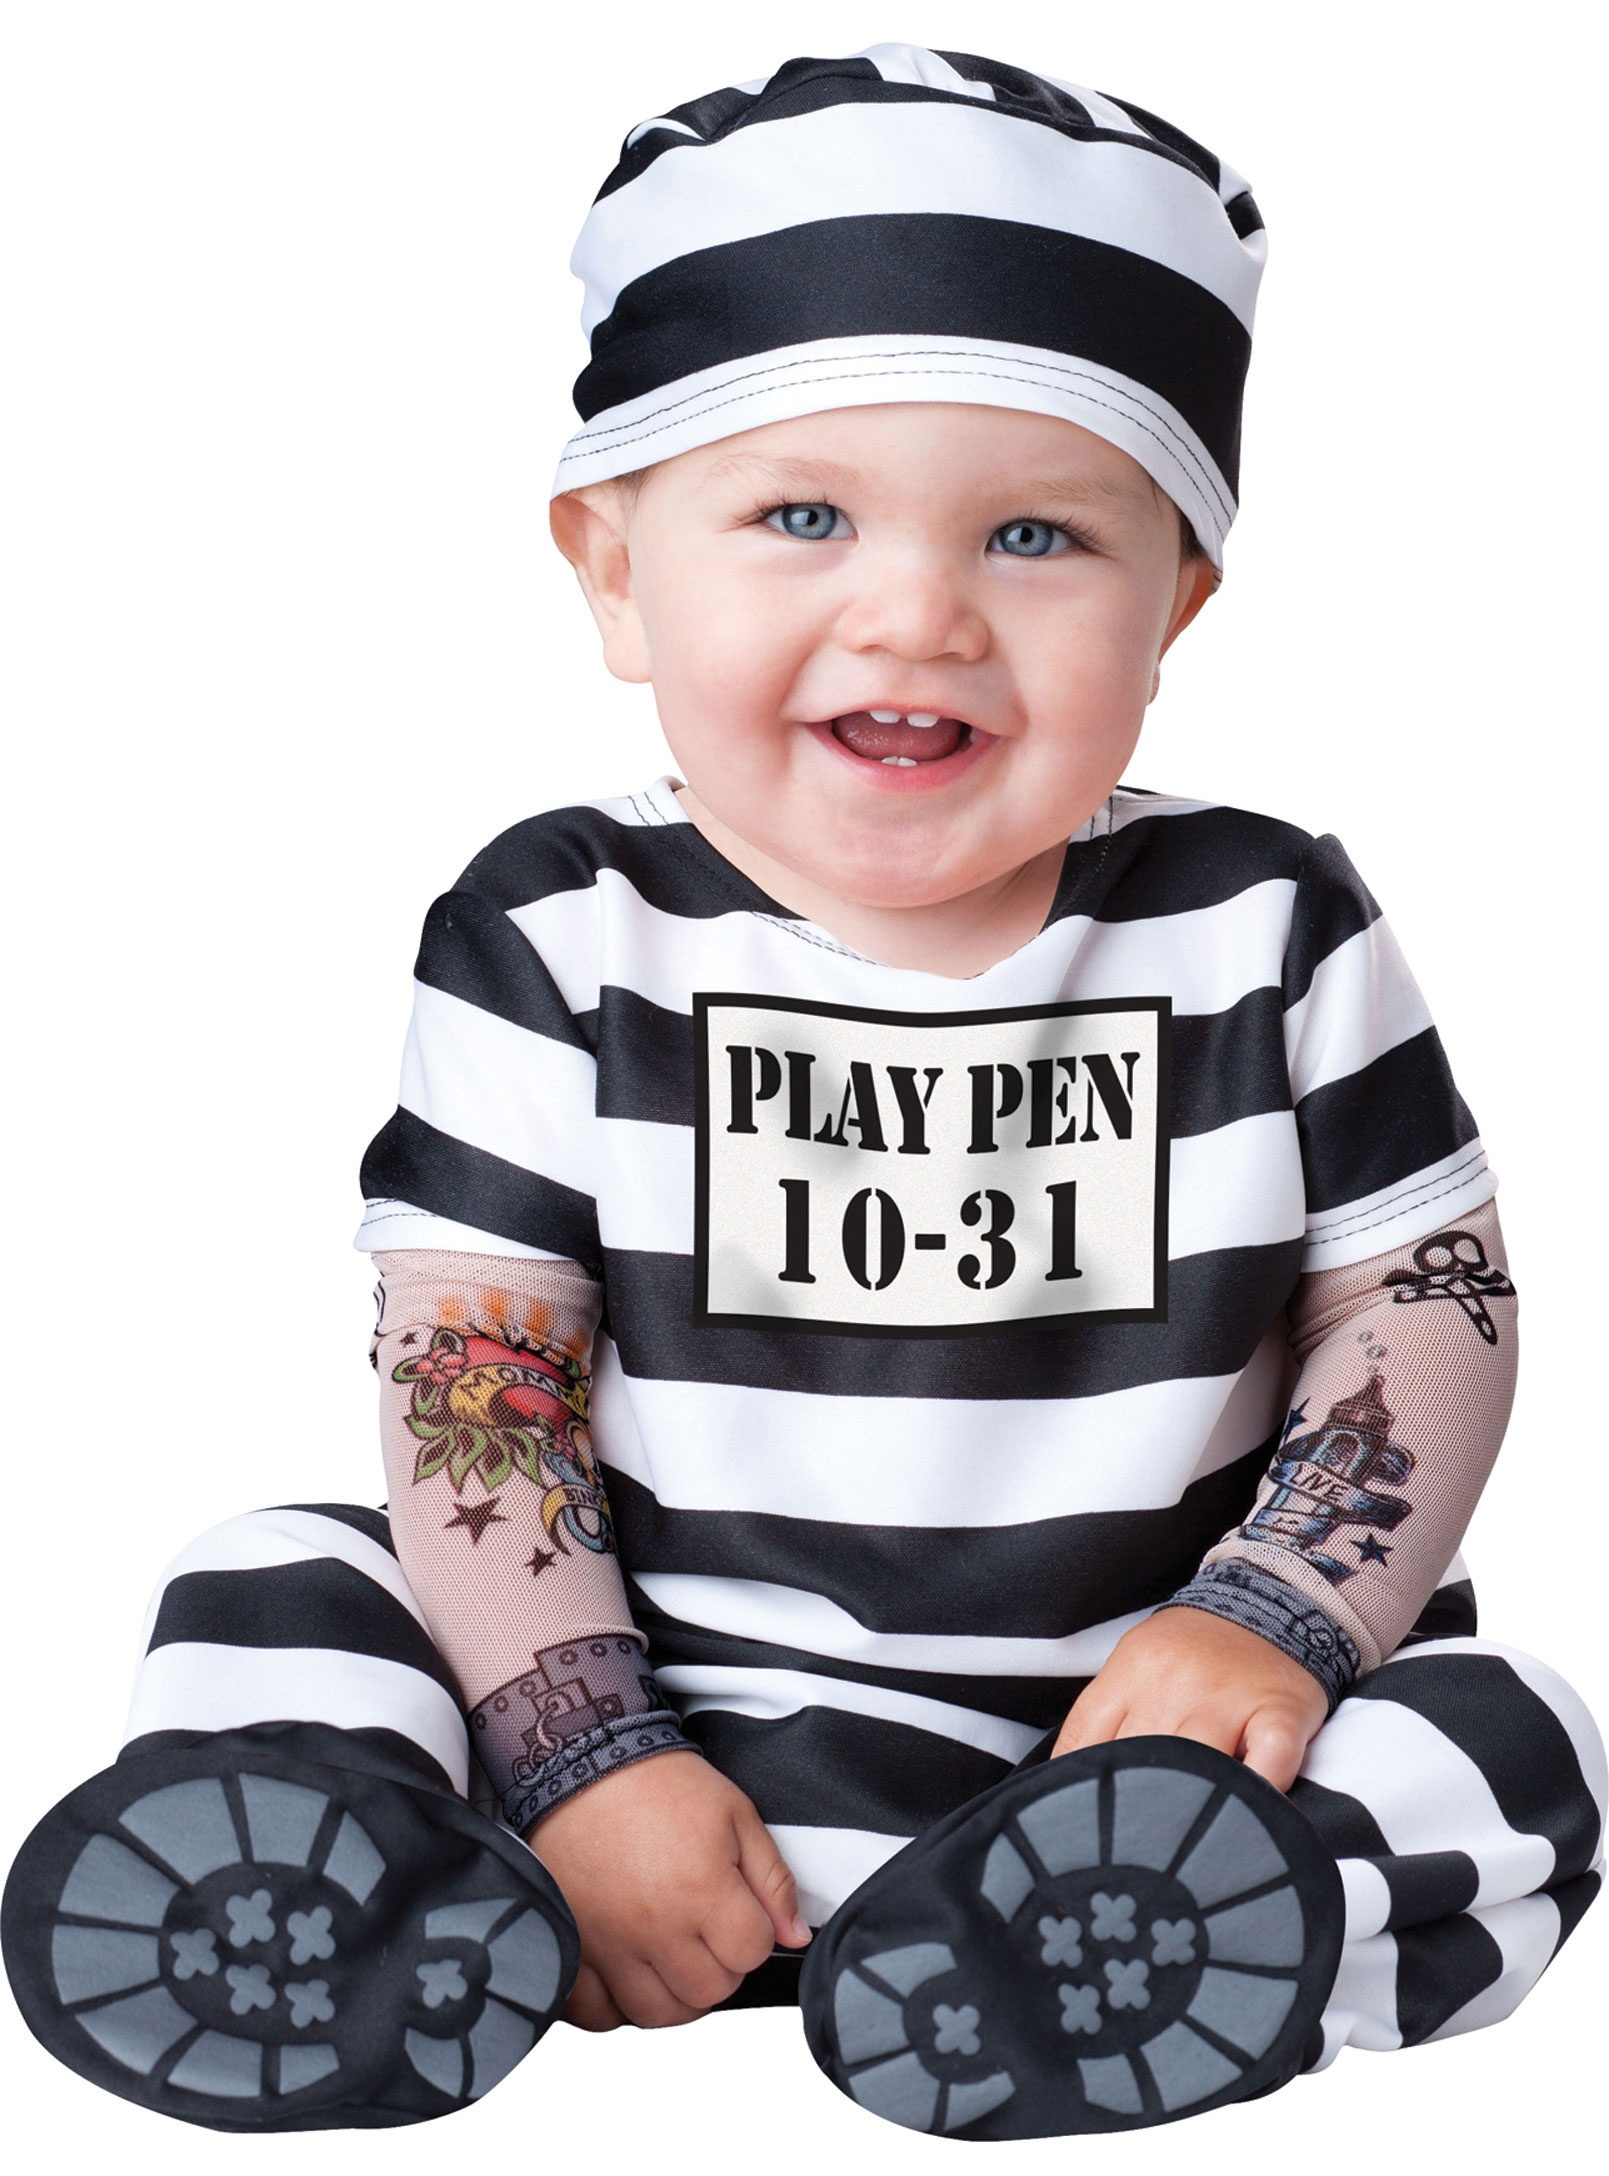 Home gt gt convict costume gt gt convict time out baby costume